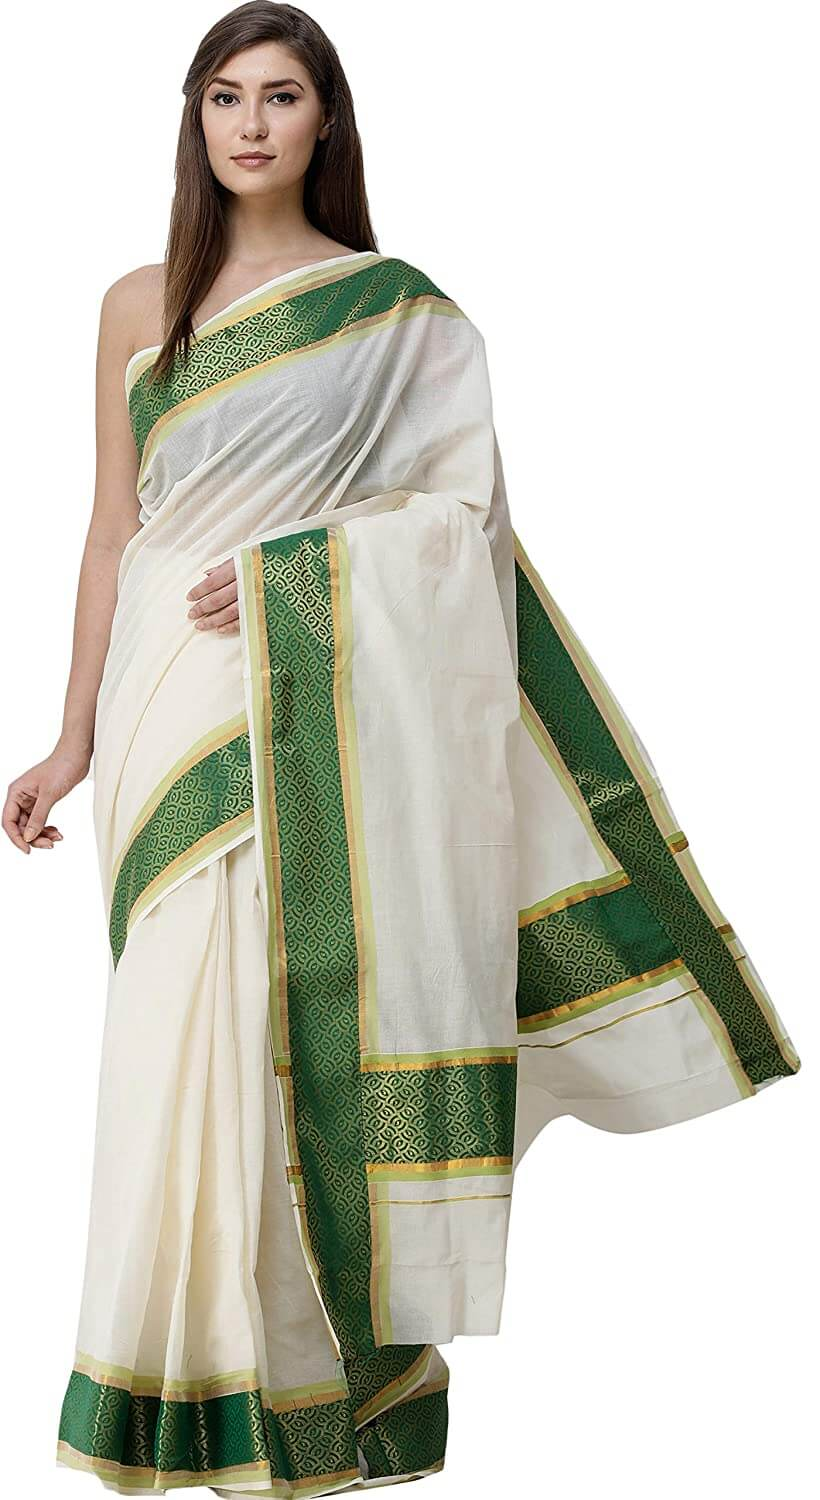 Green Kasavu Saree